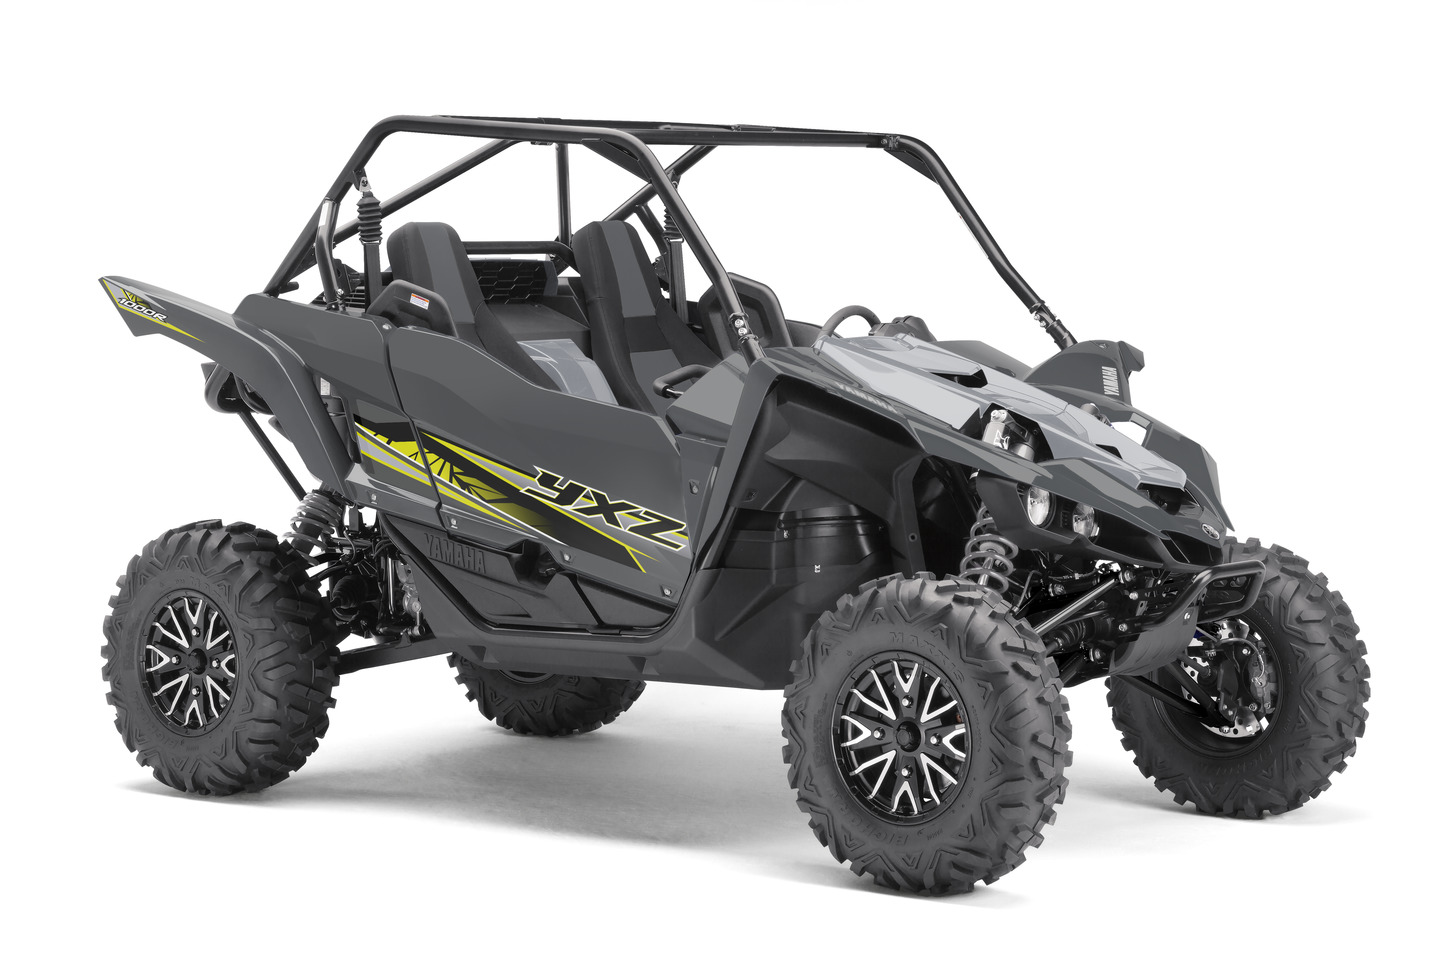 2019 Yamaha Yxz1000r Most Versatile Pure Sport Side By